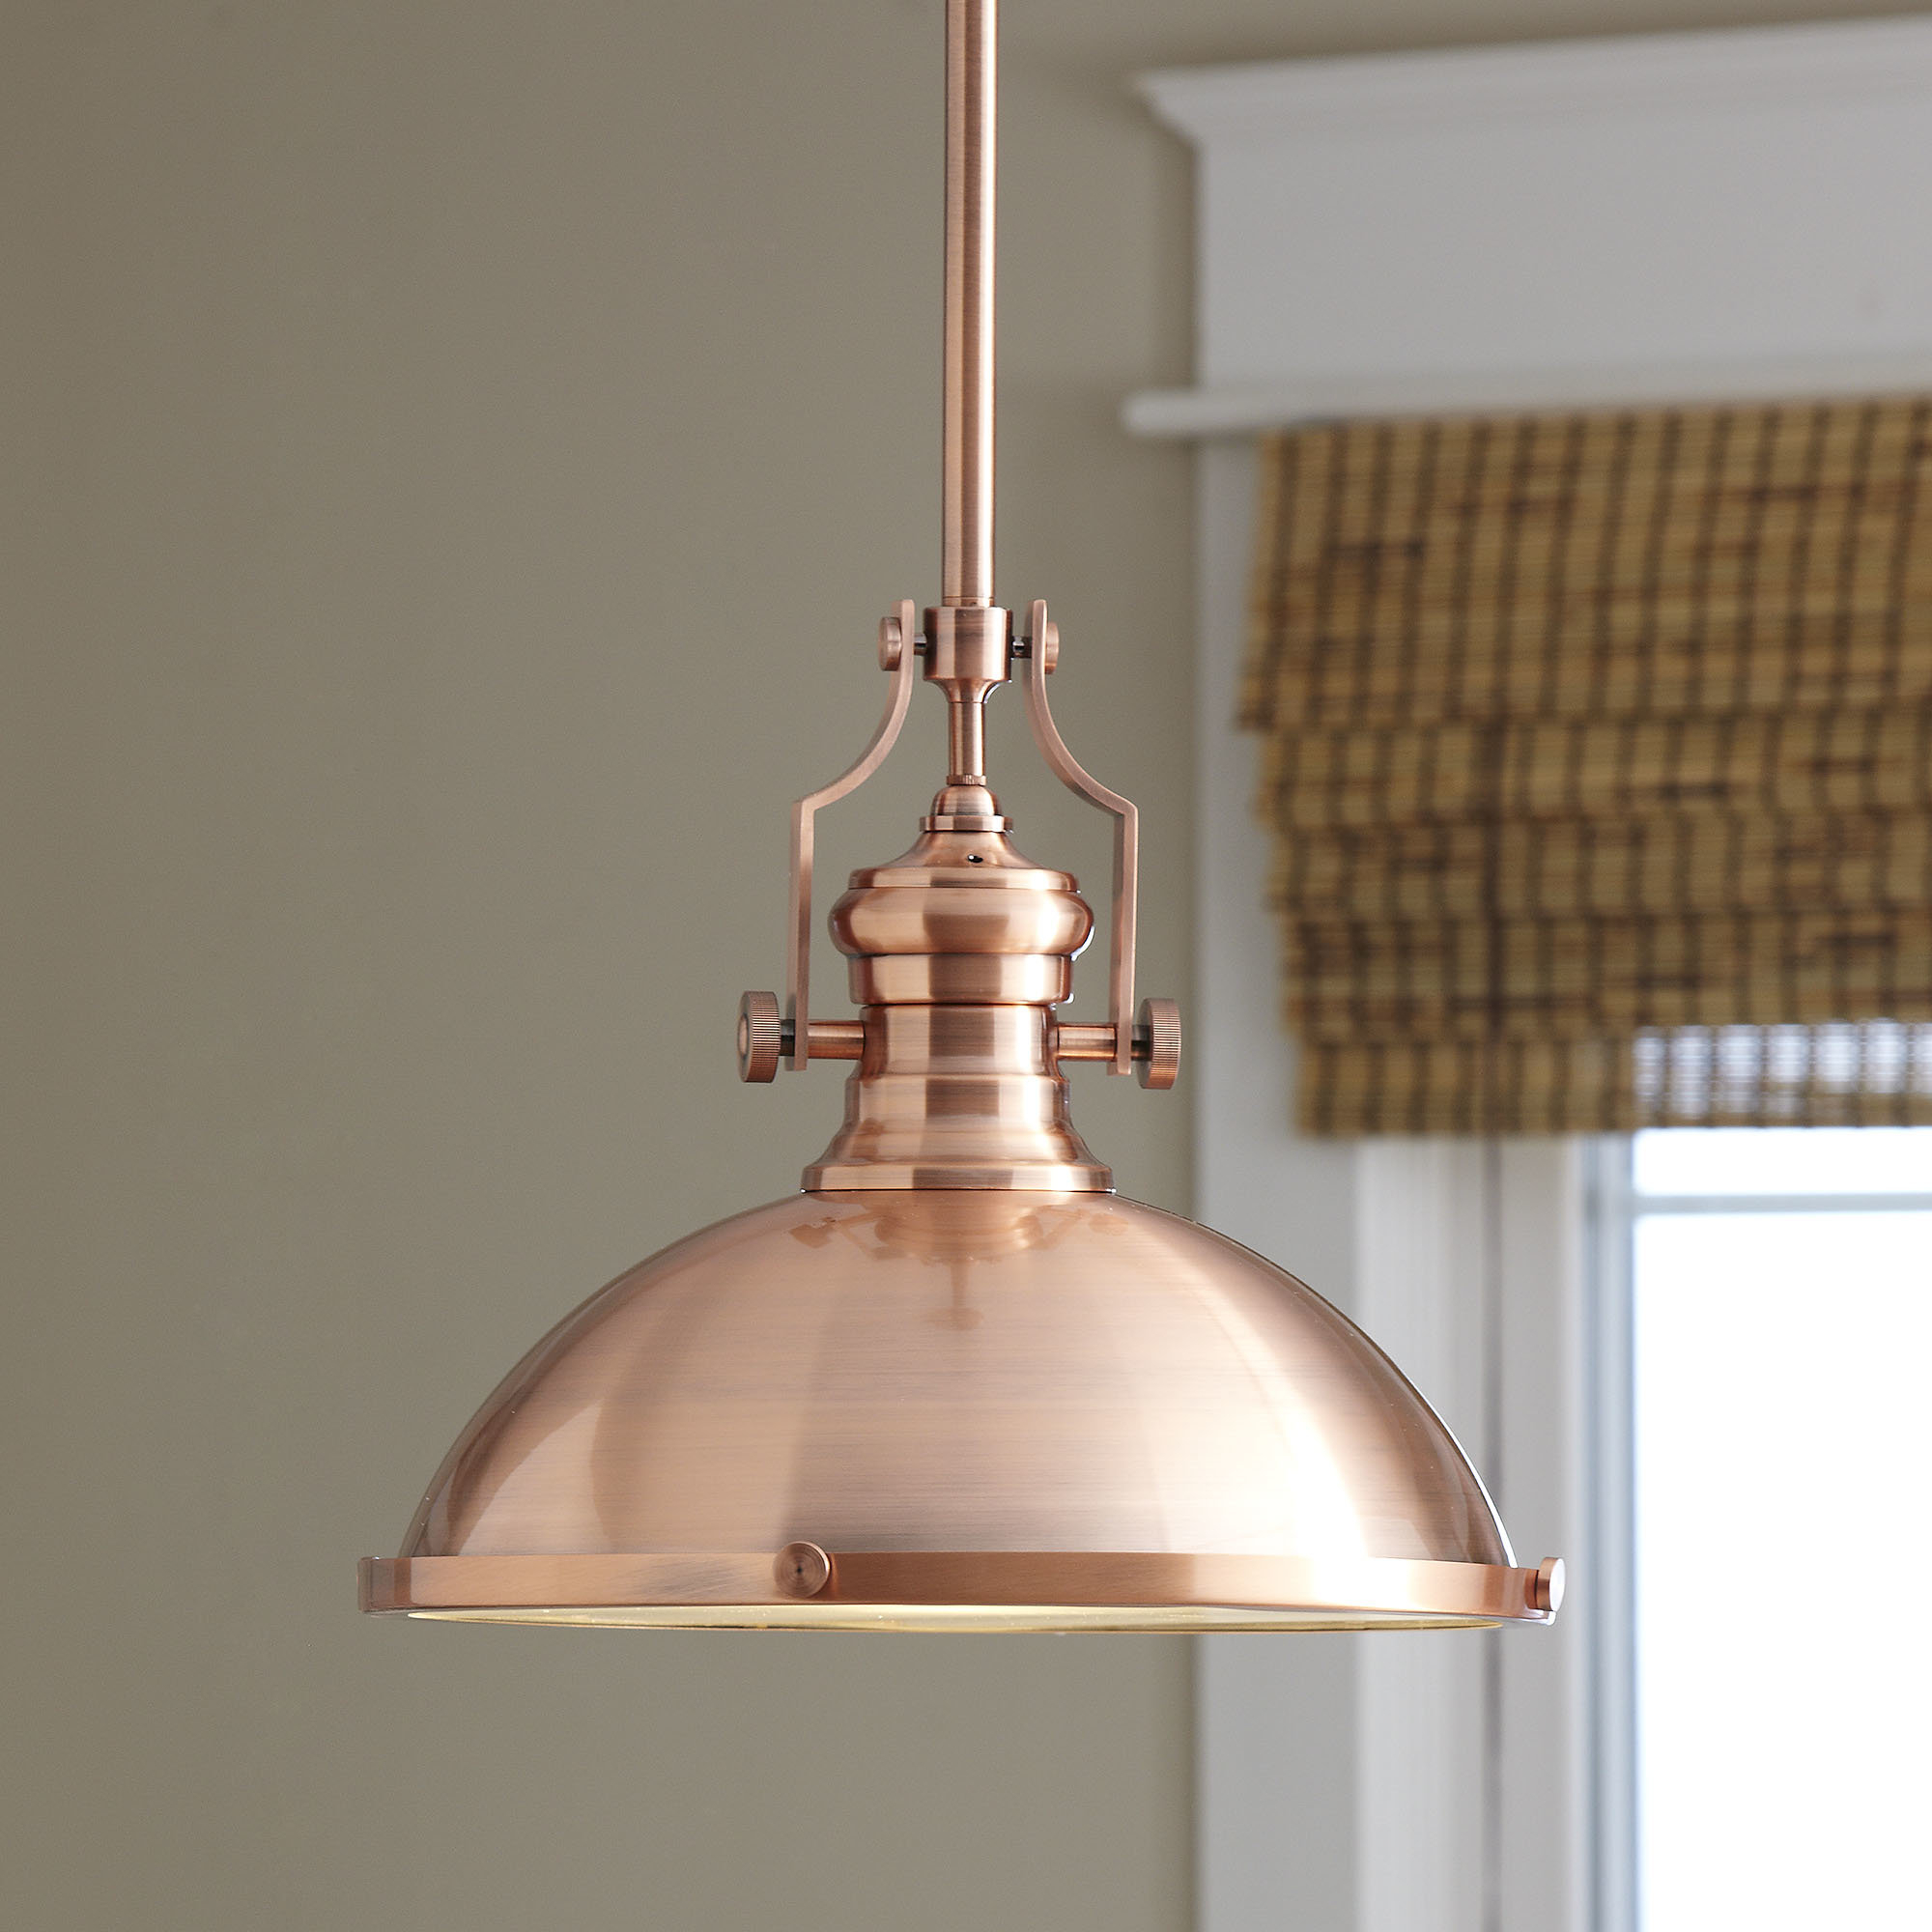 1 Light Single Dome Pendant Intended For Well Known Monadnock 1 Light Single Dome Pendants (Gallery 12 of 25)